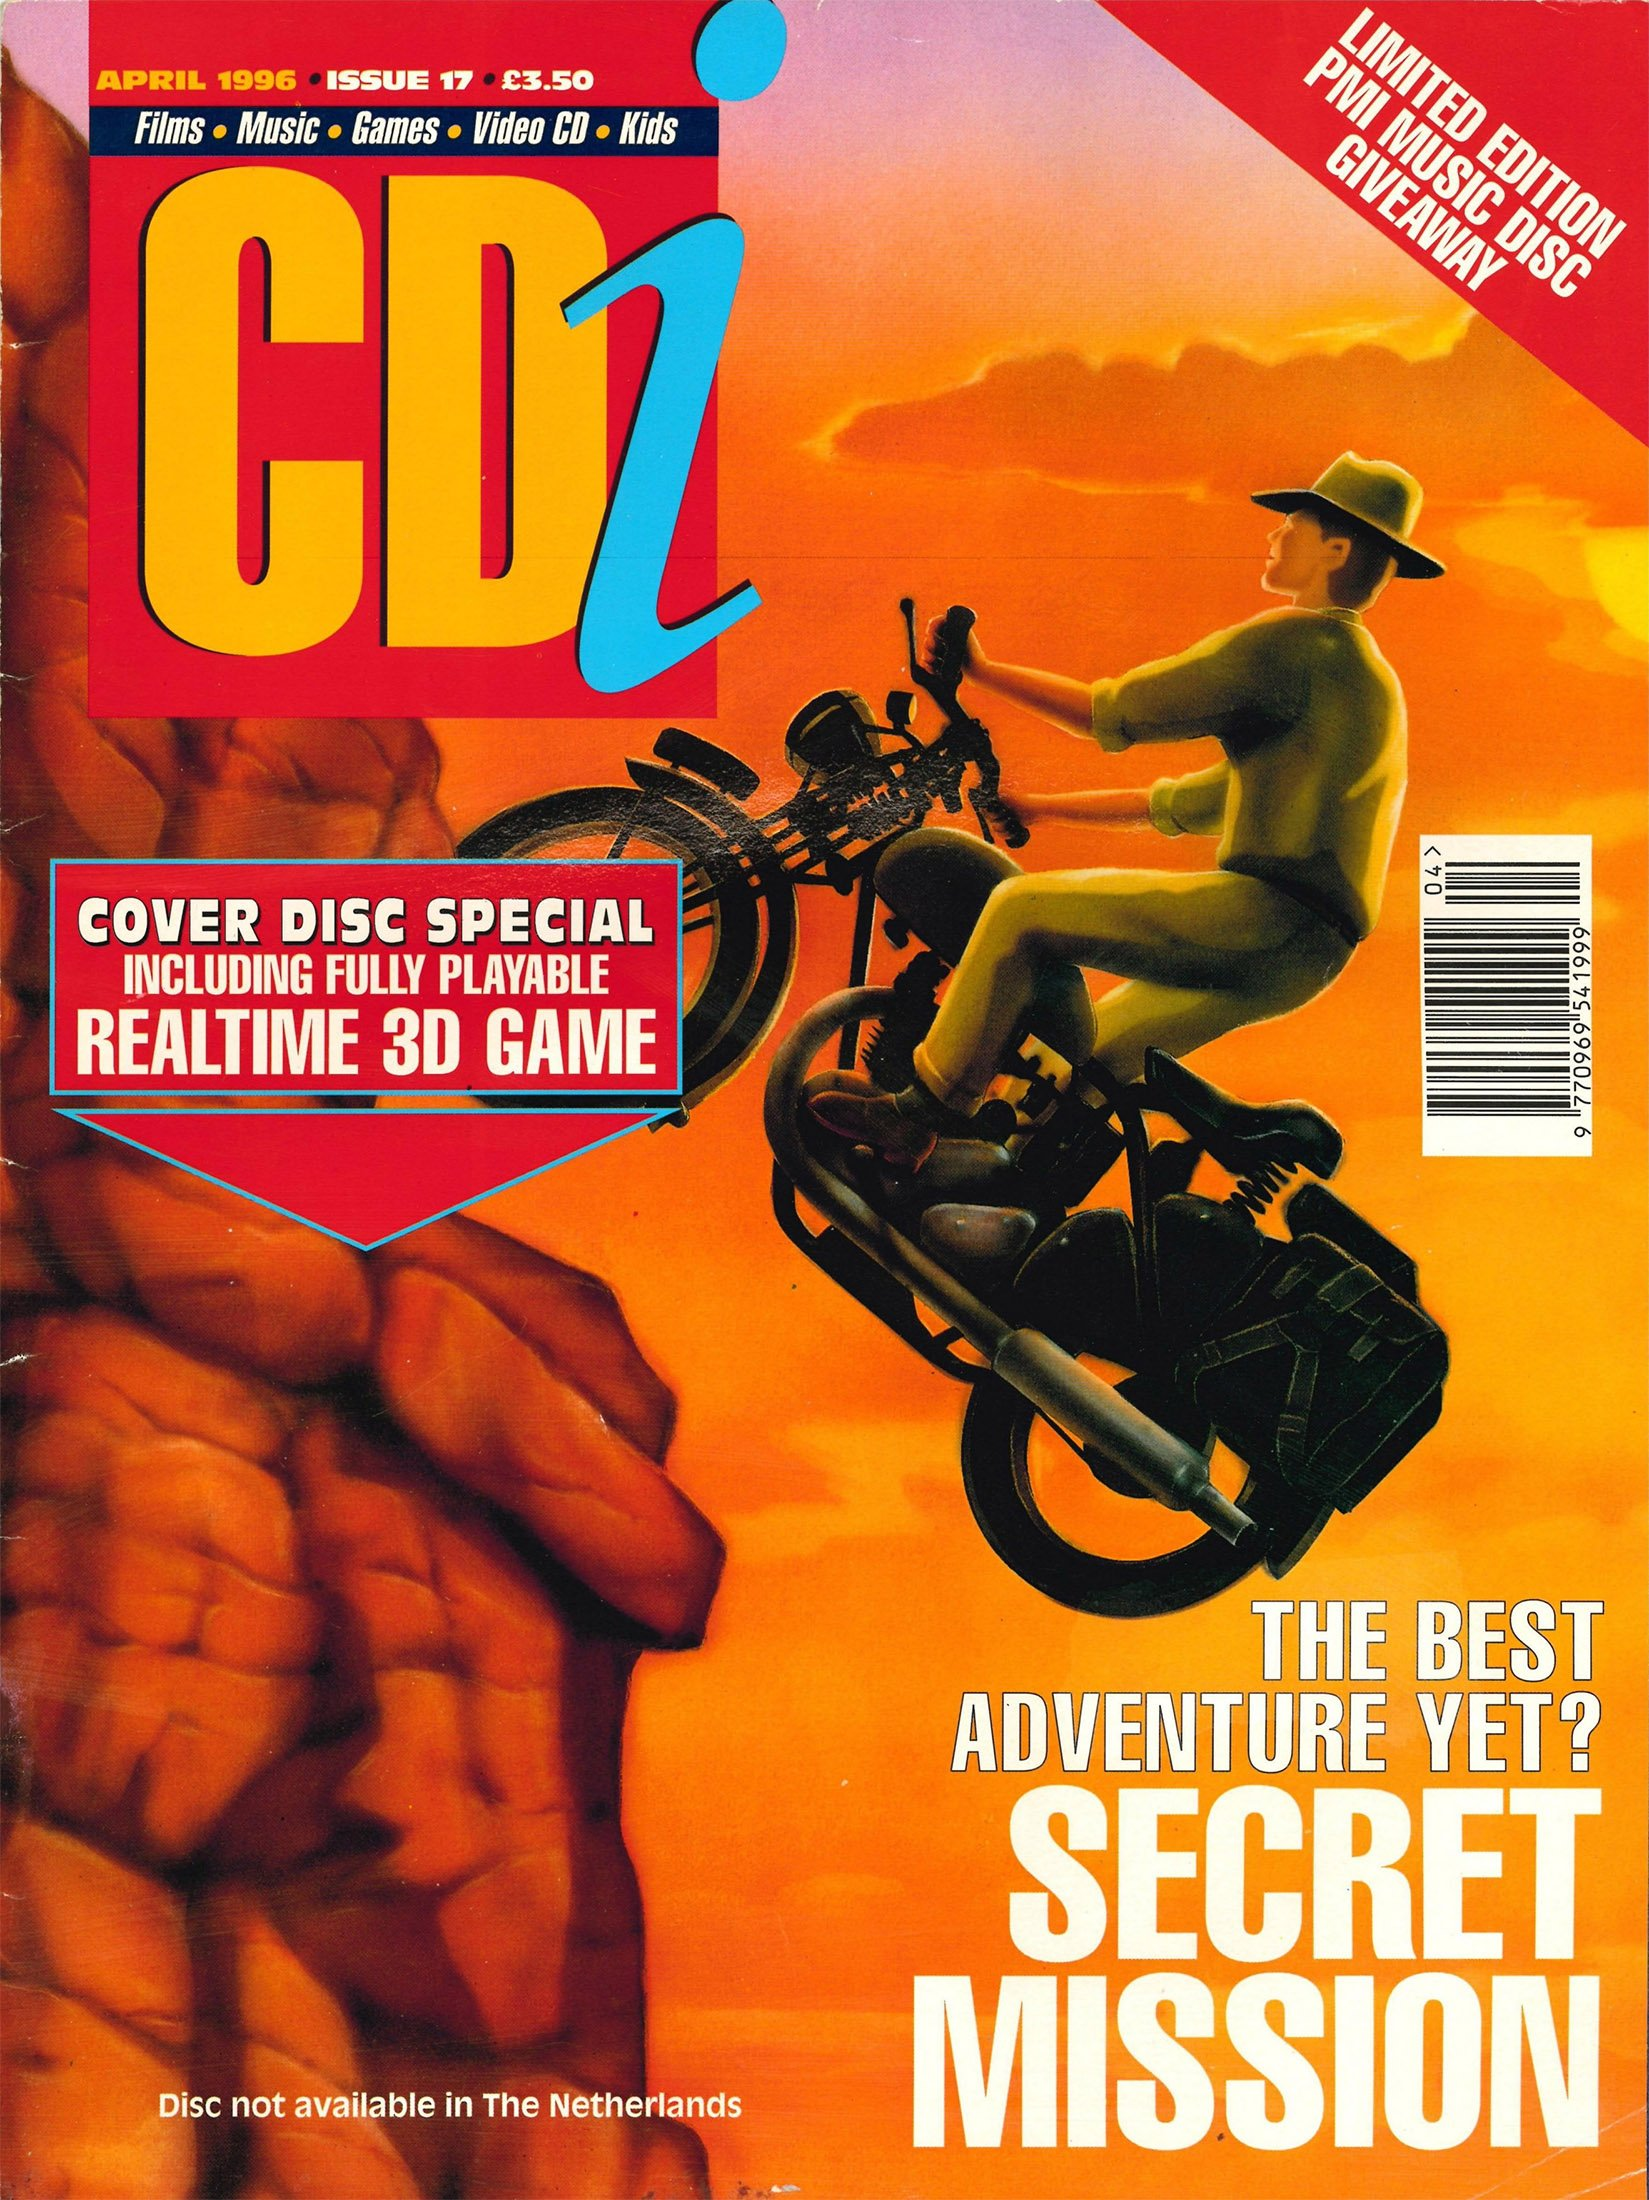 CDi Issue 17 (April 1996)